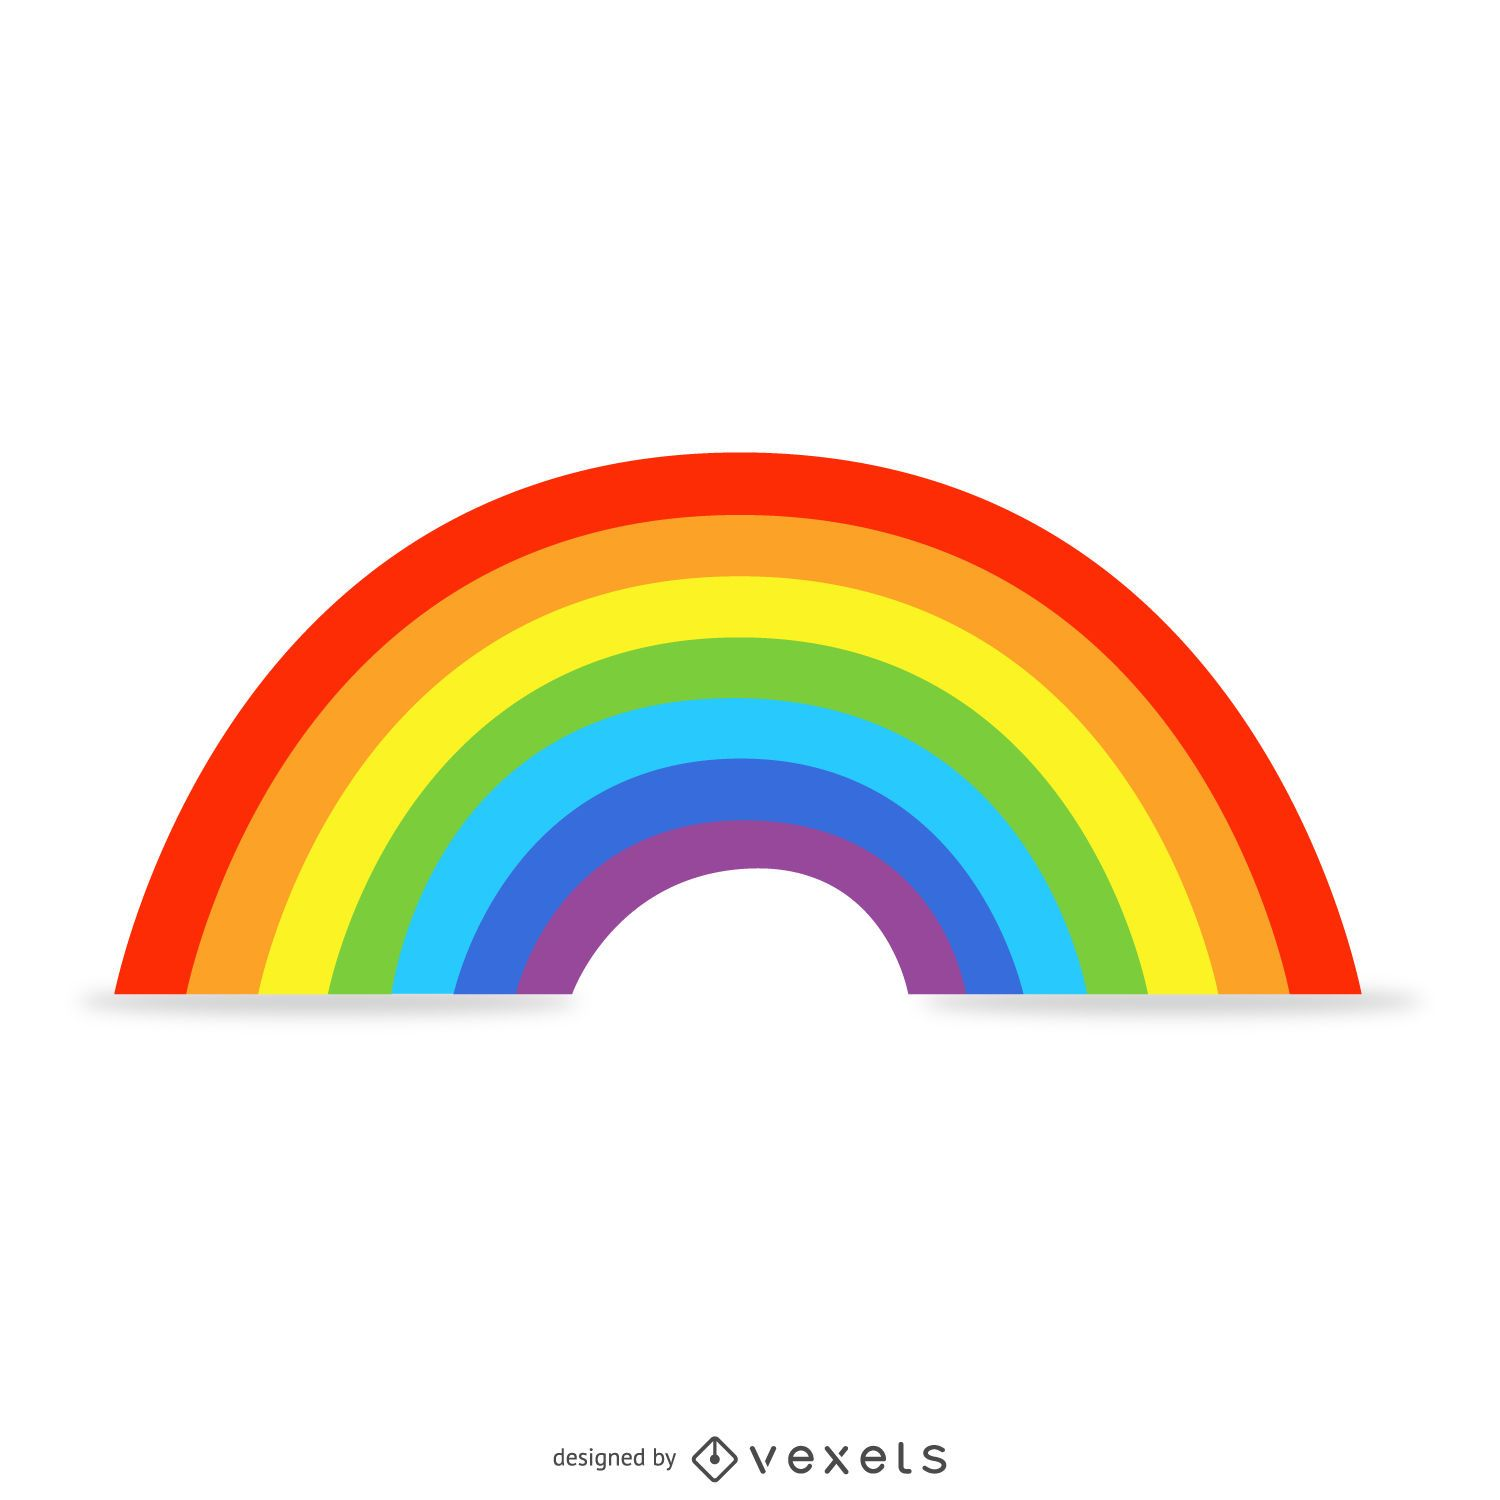 rainbow illustrations and clipart - photo #7